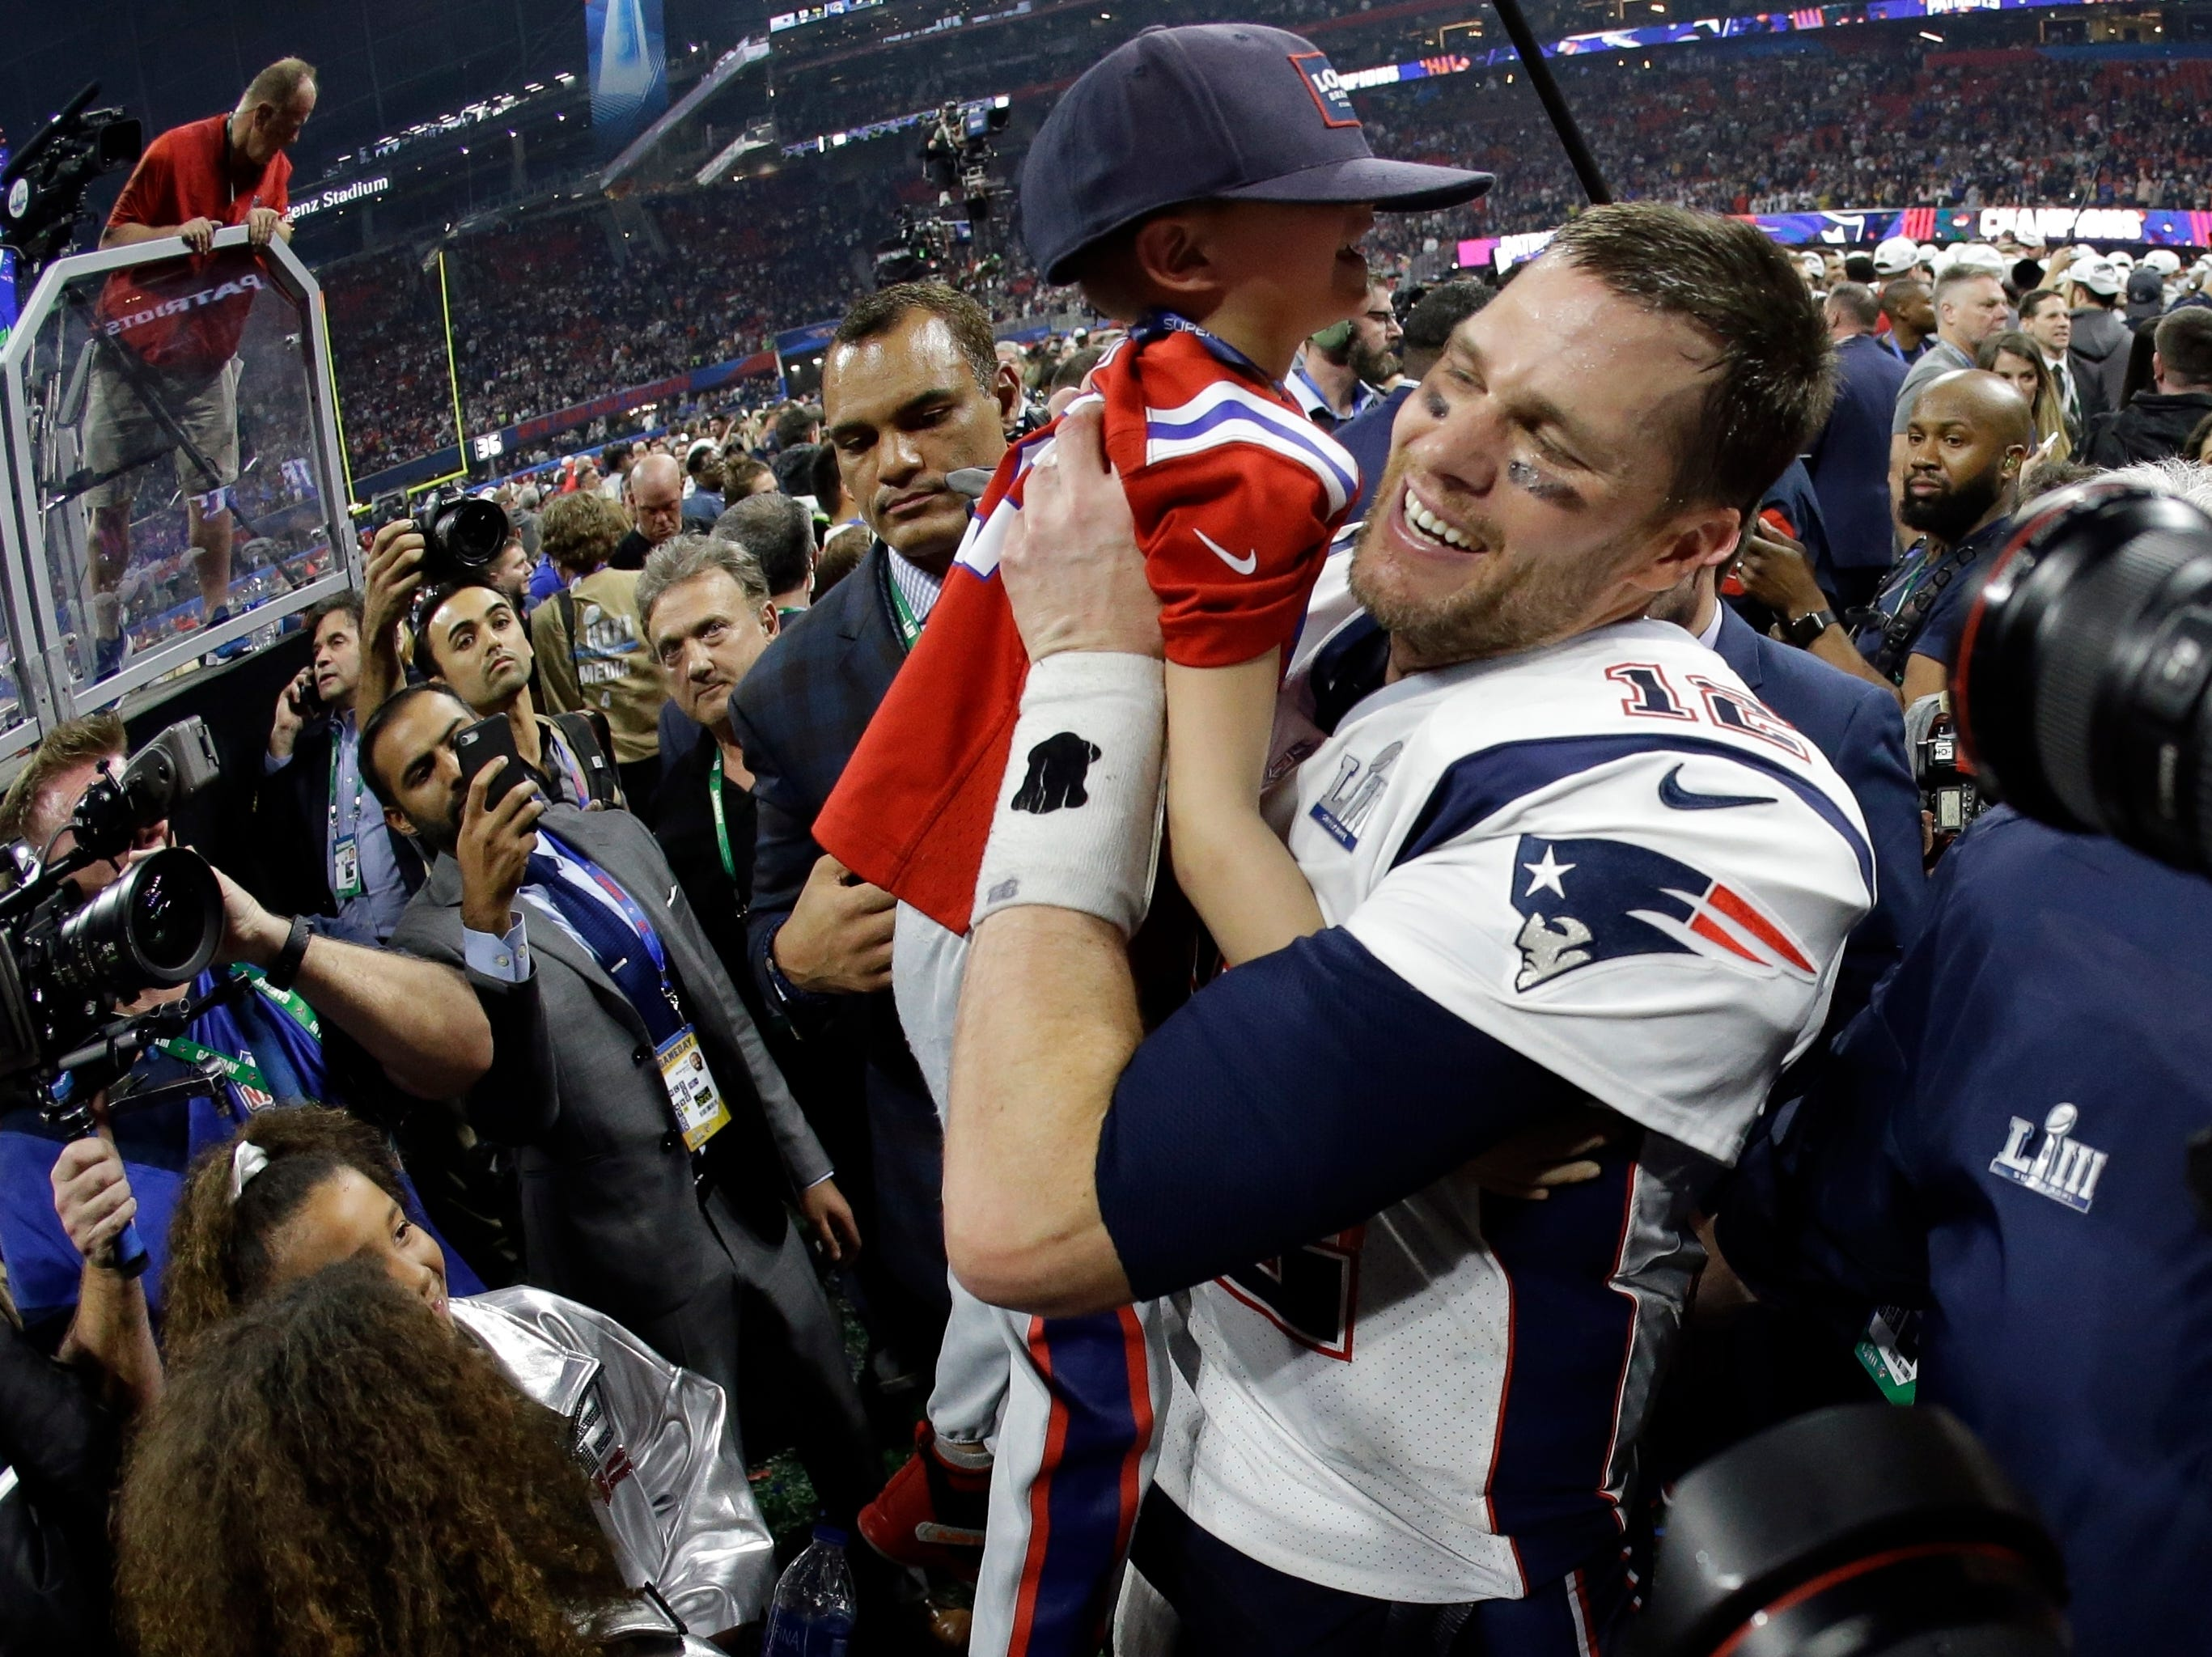 New England Patriots' Tom Brady lifts his son, Ben, after the game.